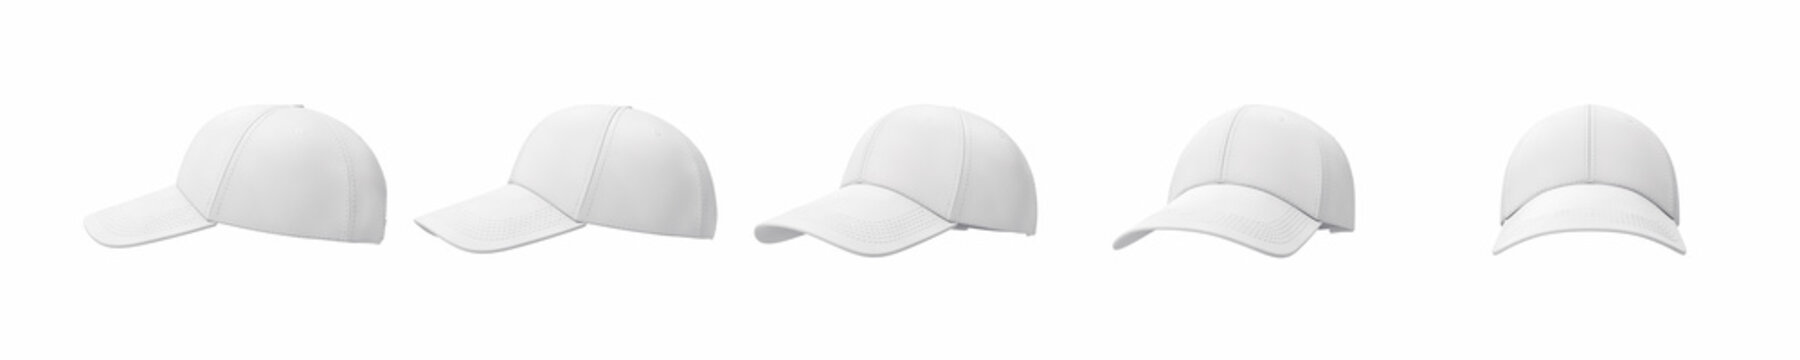 3d rendering of five white baseball caps shown in one line from side to front view on a white background.